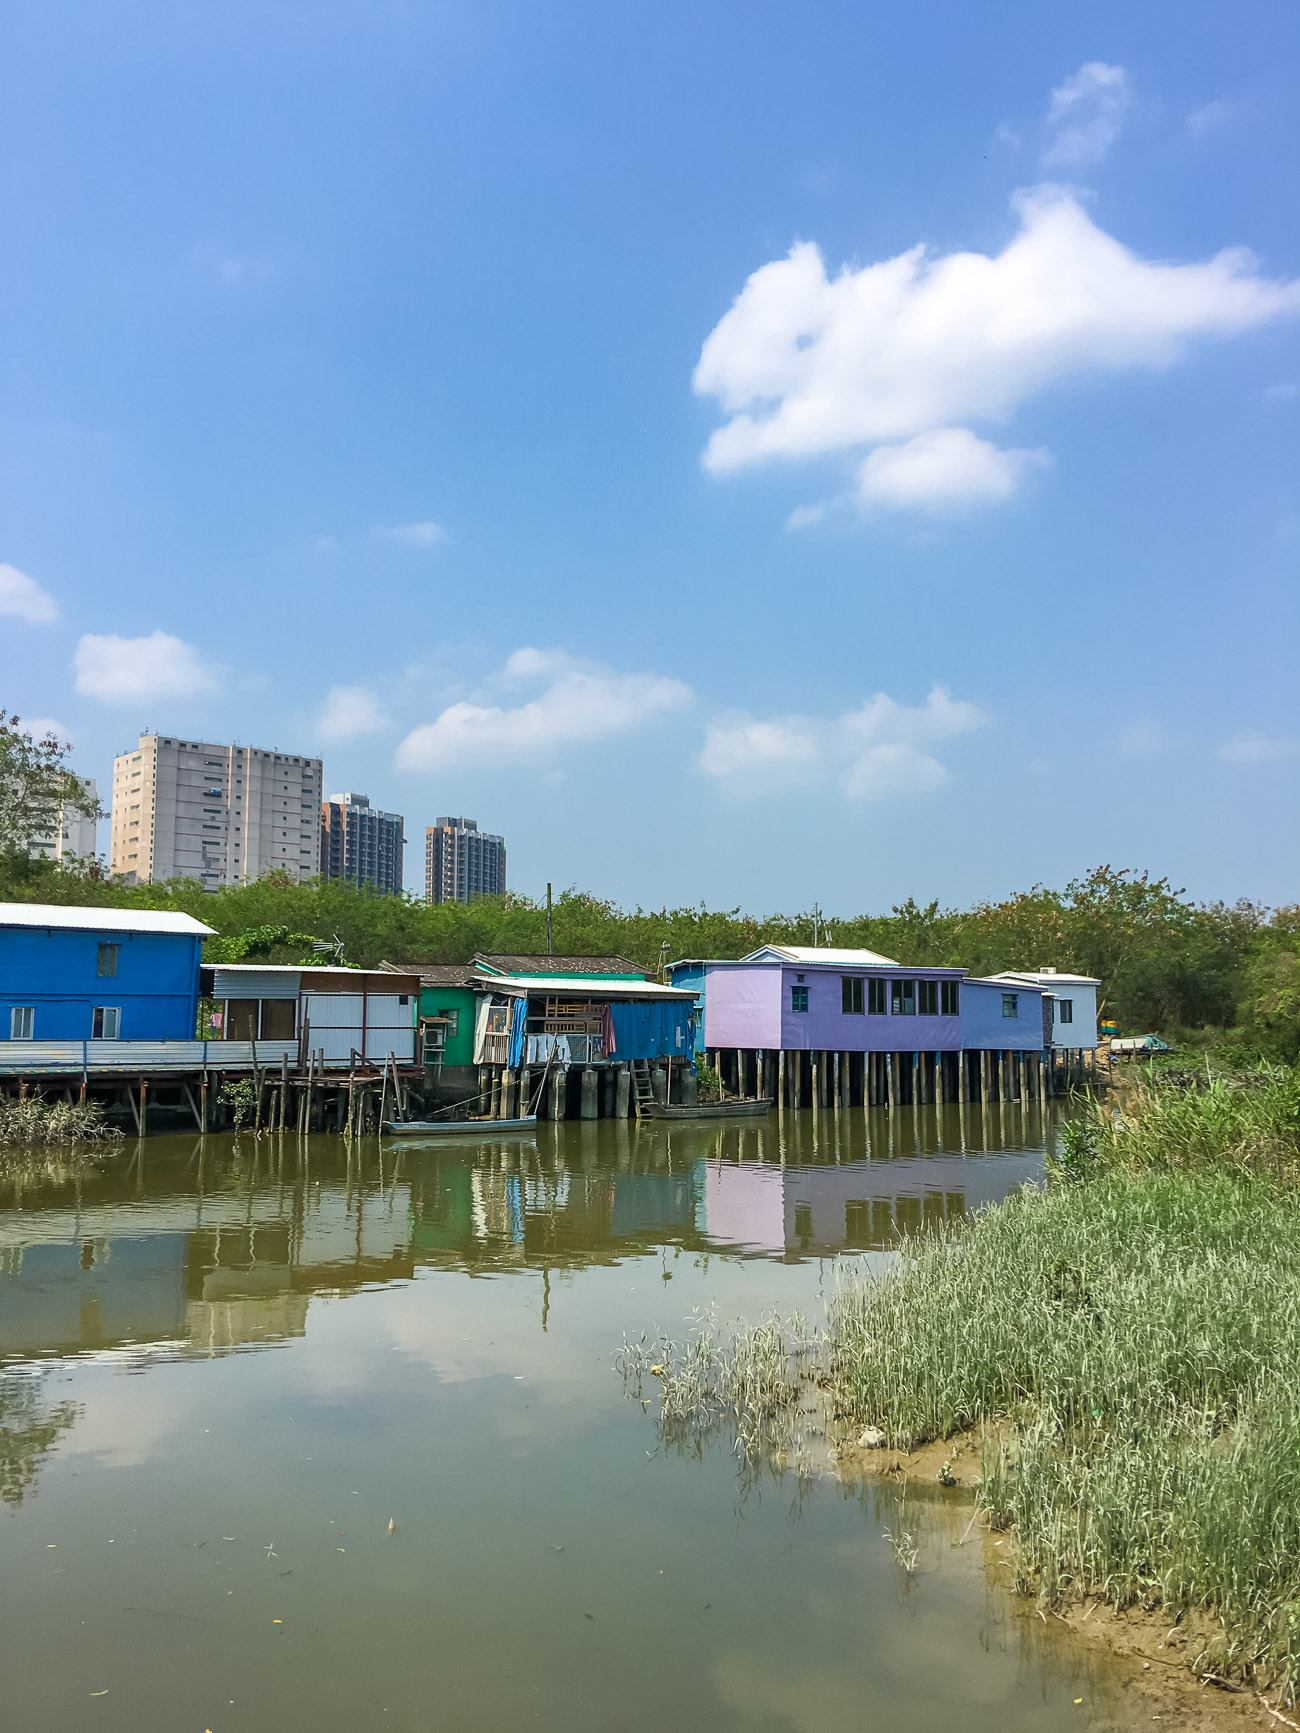 Stilt houses in Nam Sang Wai, located in Hong Kong's New Territories.